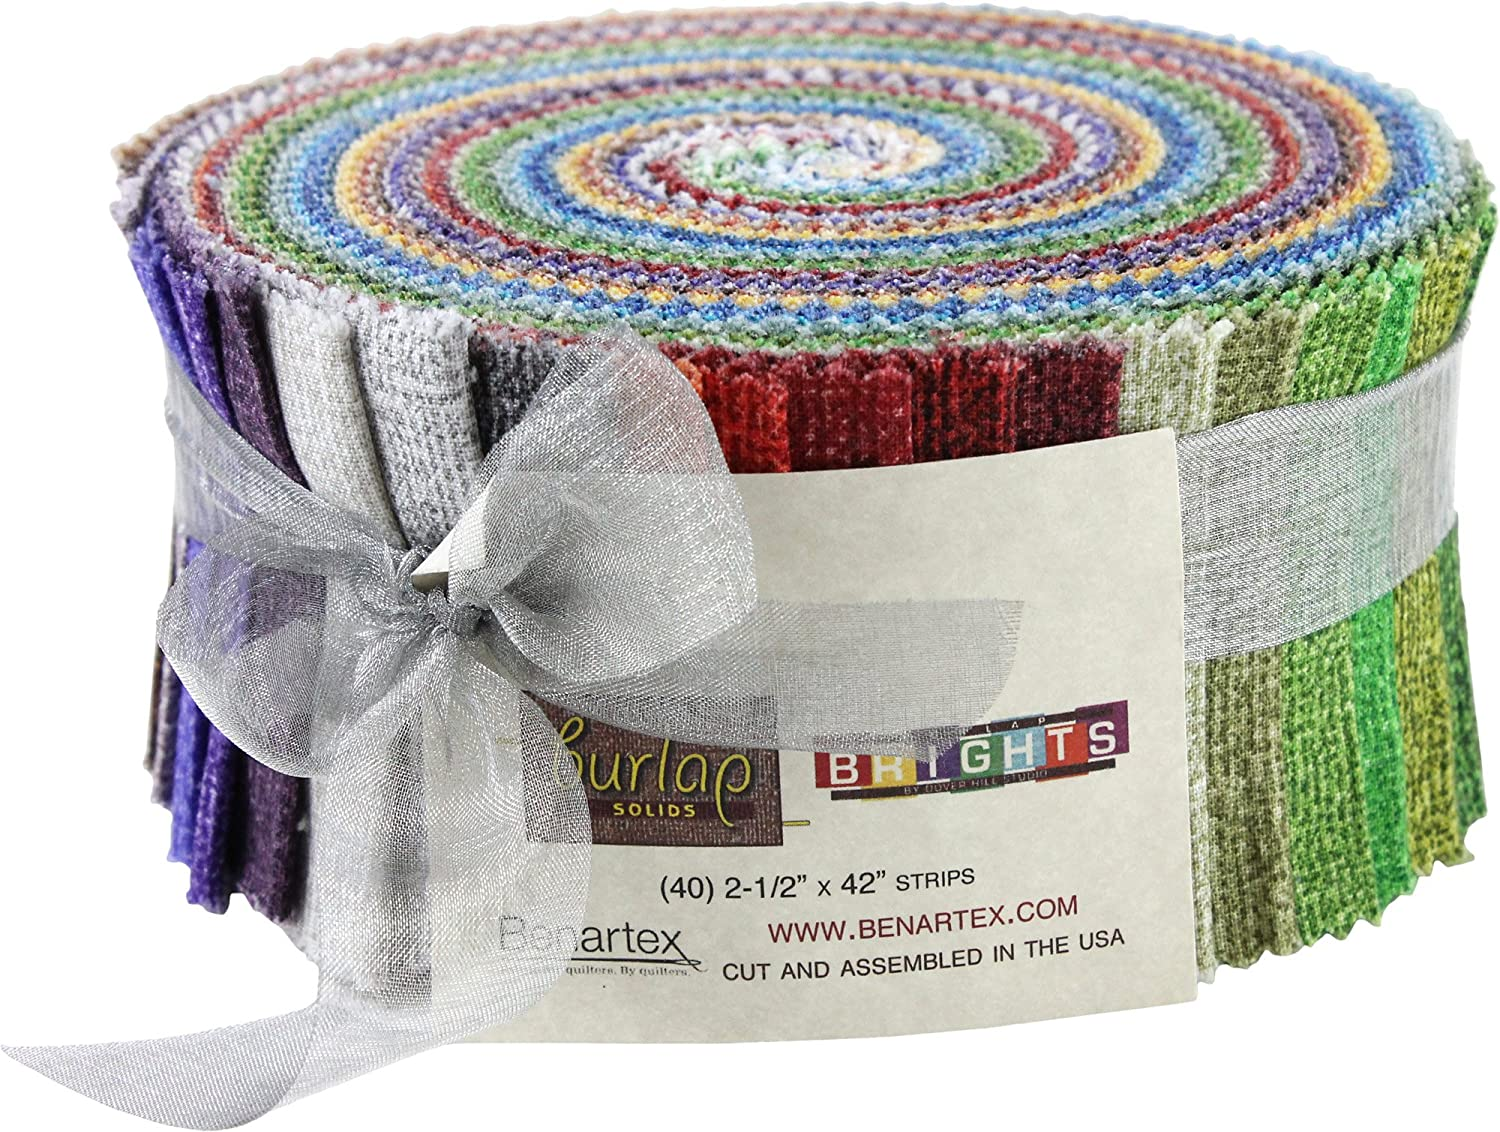 Burlap Solids Brights Pinwheel 40 2.5-inch Strips Jelly Roll Benartex 4336995665